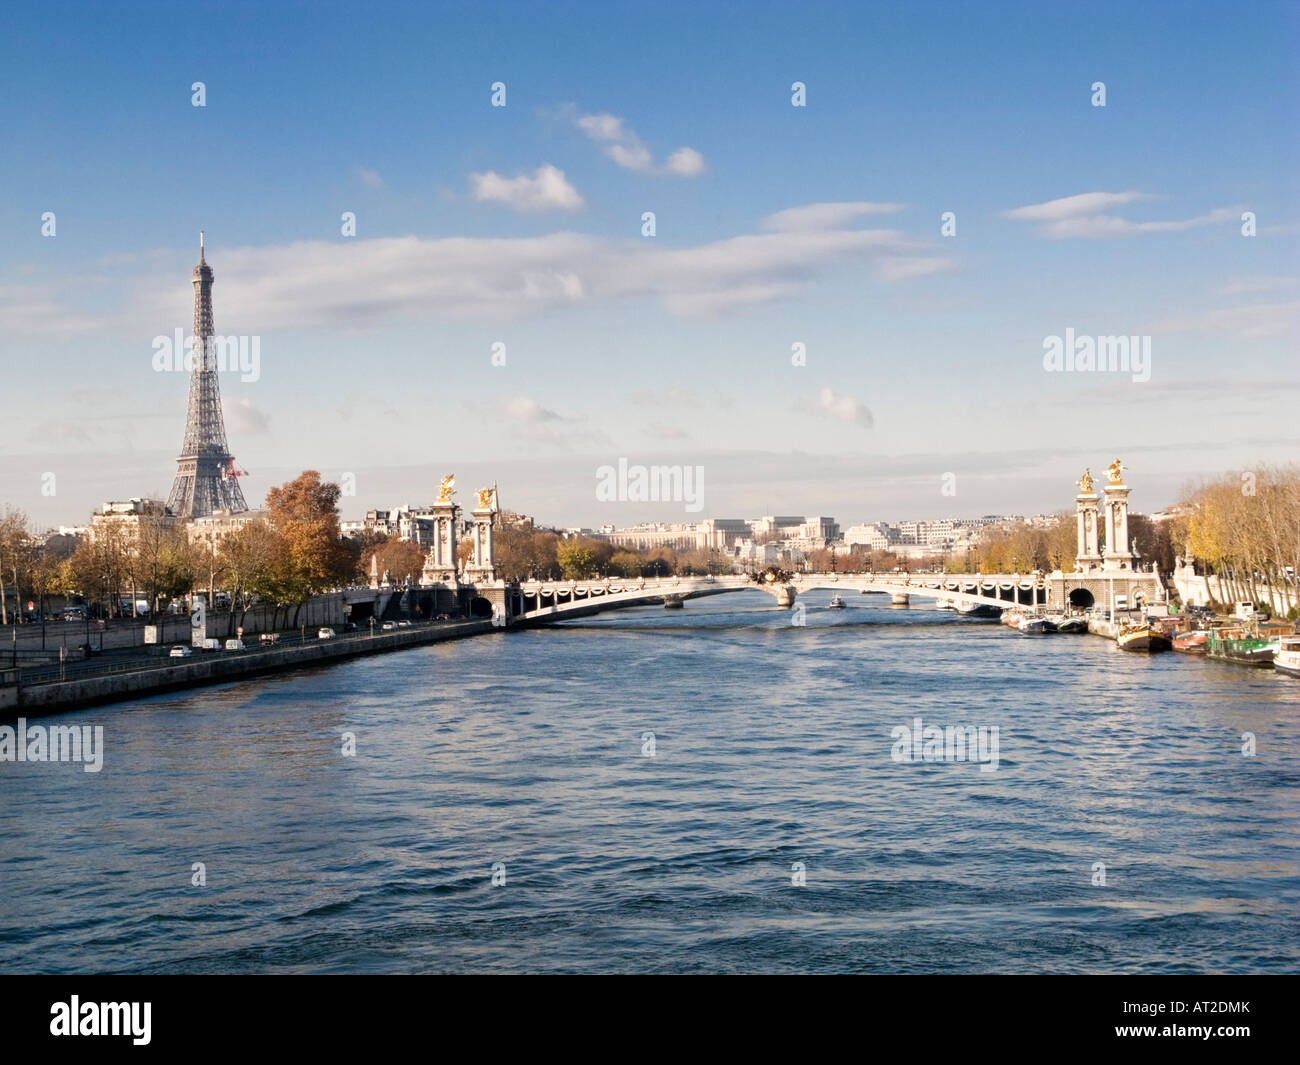 Pont Alexandre III bridge over the River Seine in Paris, France, Europe with the Eiffel Tower - autumn afternoon - Stock Image